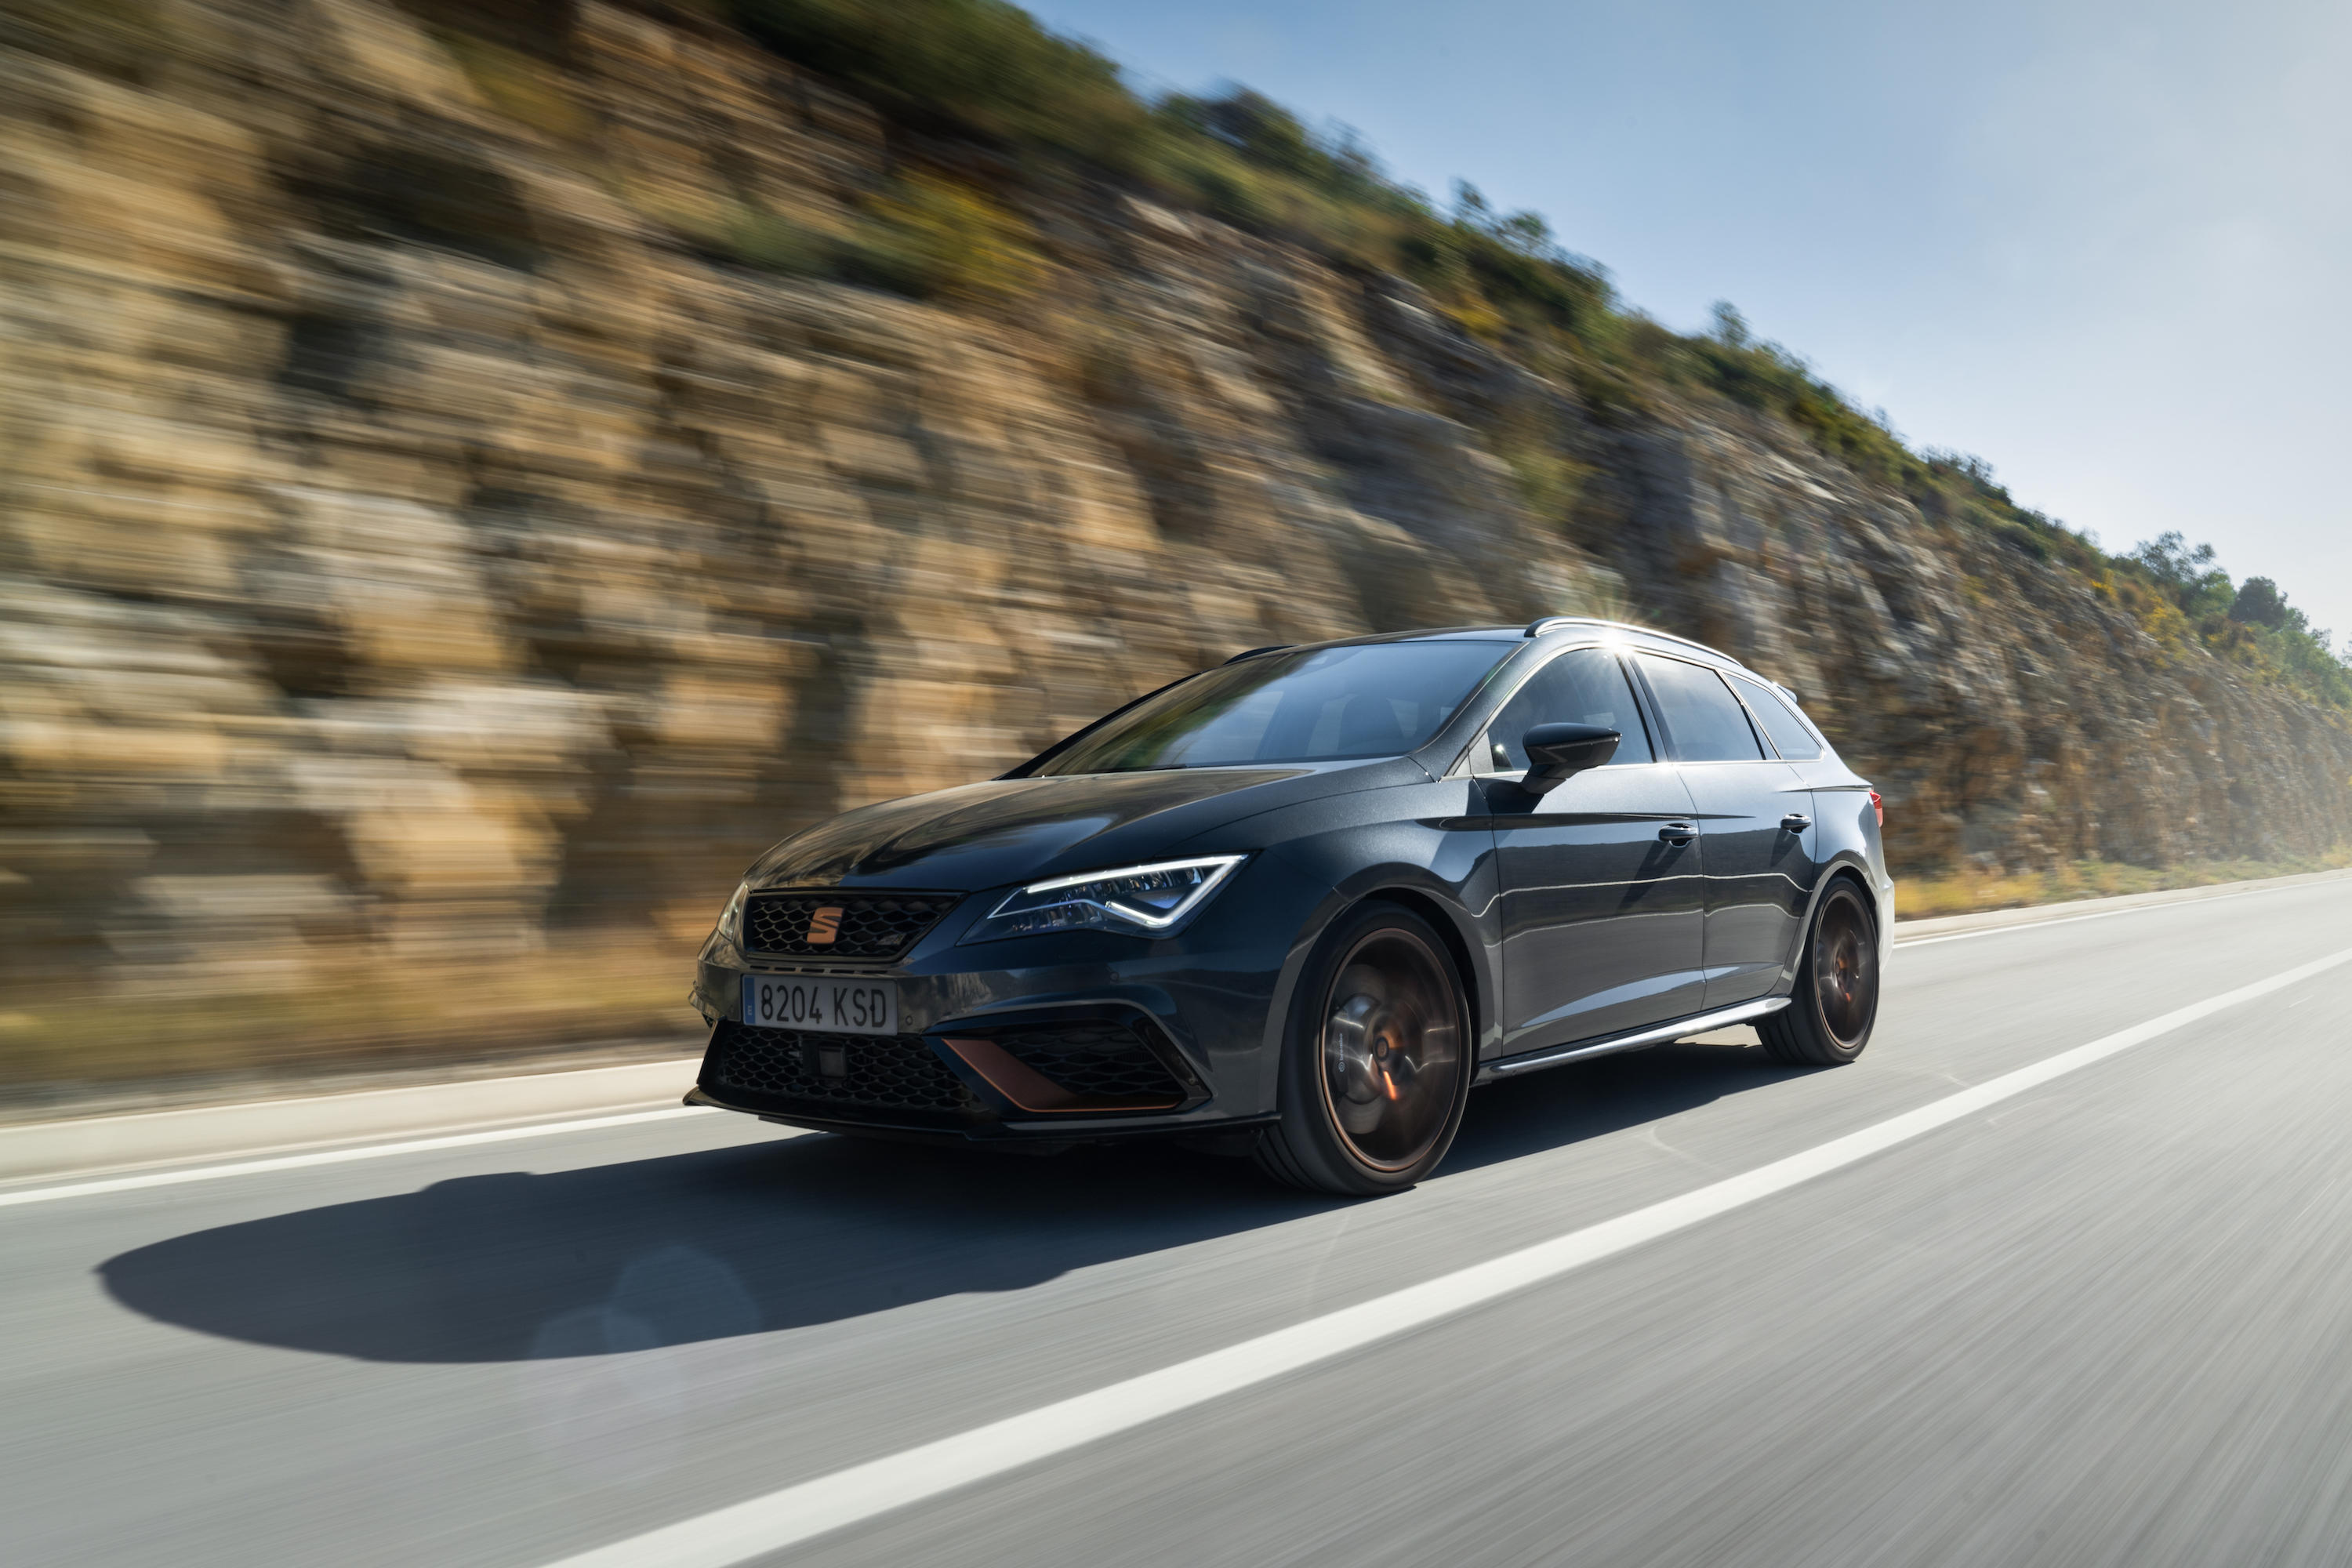 leon-cupra-r-st-brings-new-levels-of-uniqueness-sophistication-and-performance-05-hq